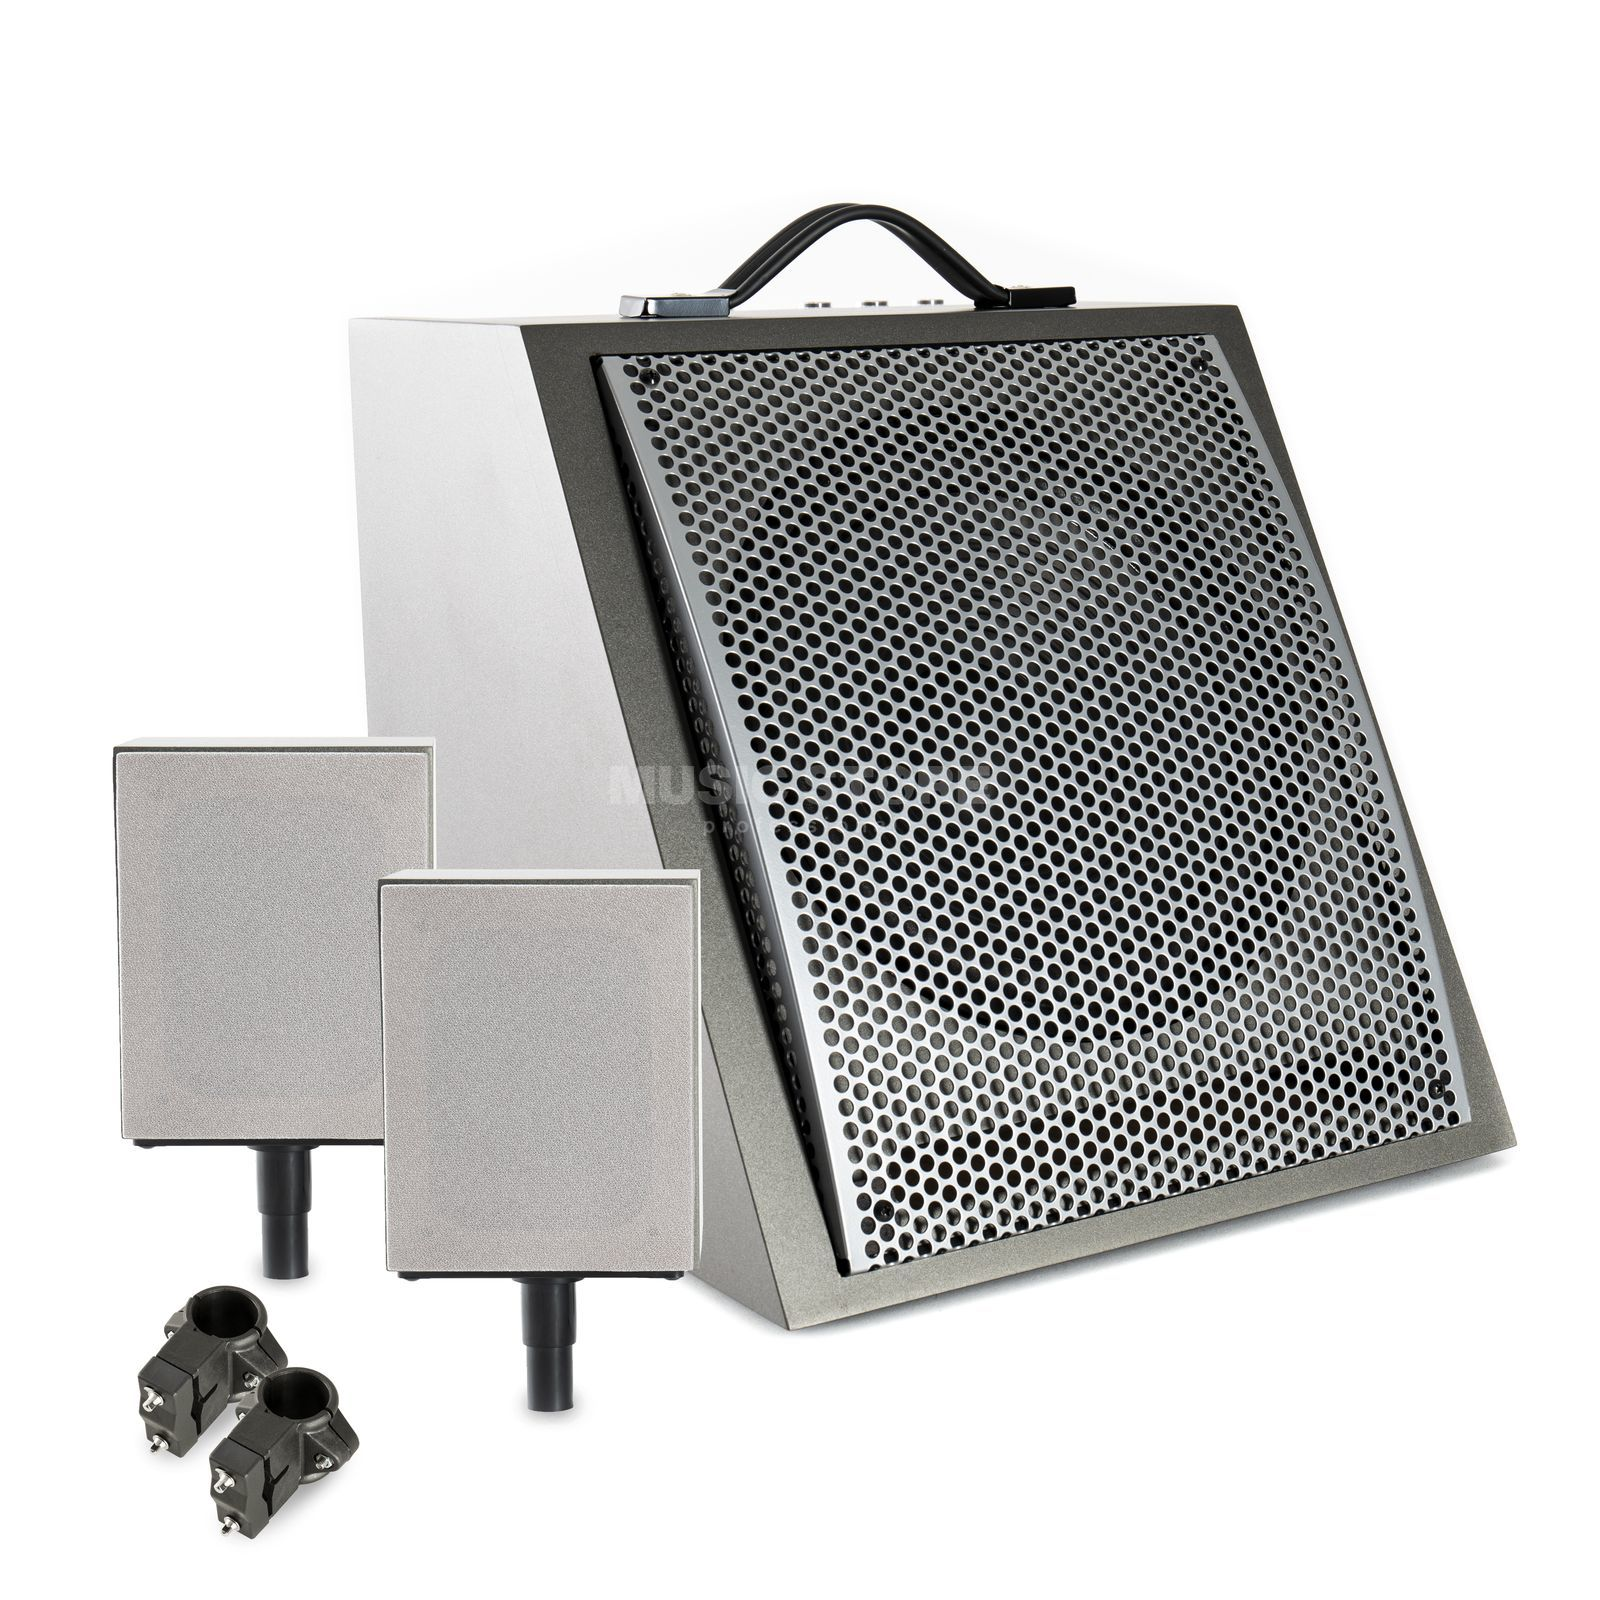 Fame E-Drum Monitor MS-600PM, 2.1 System, 60W Produktbild